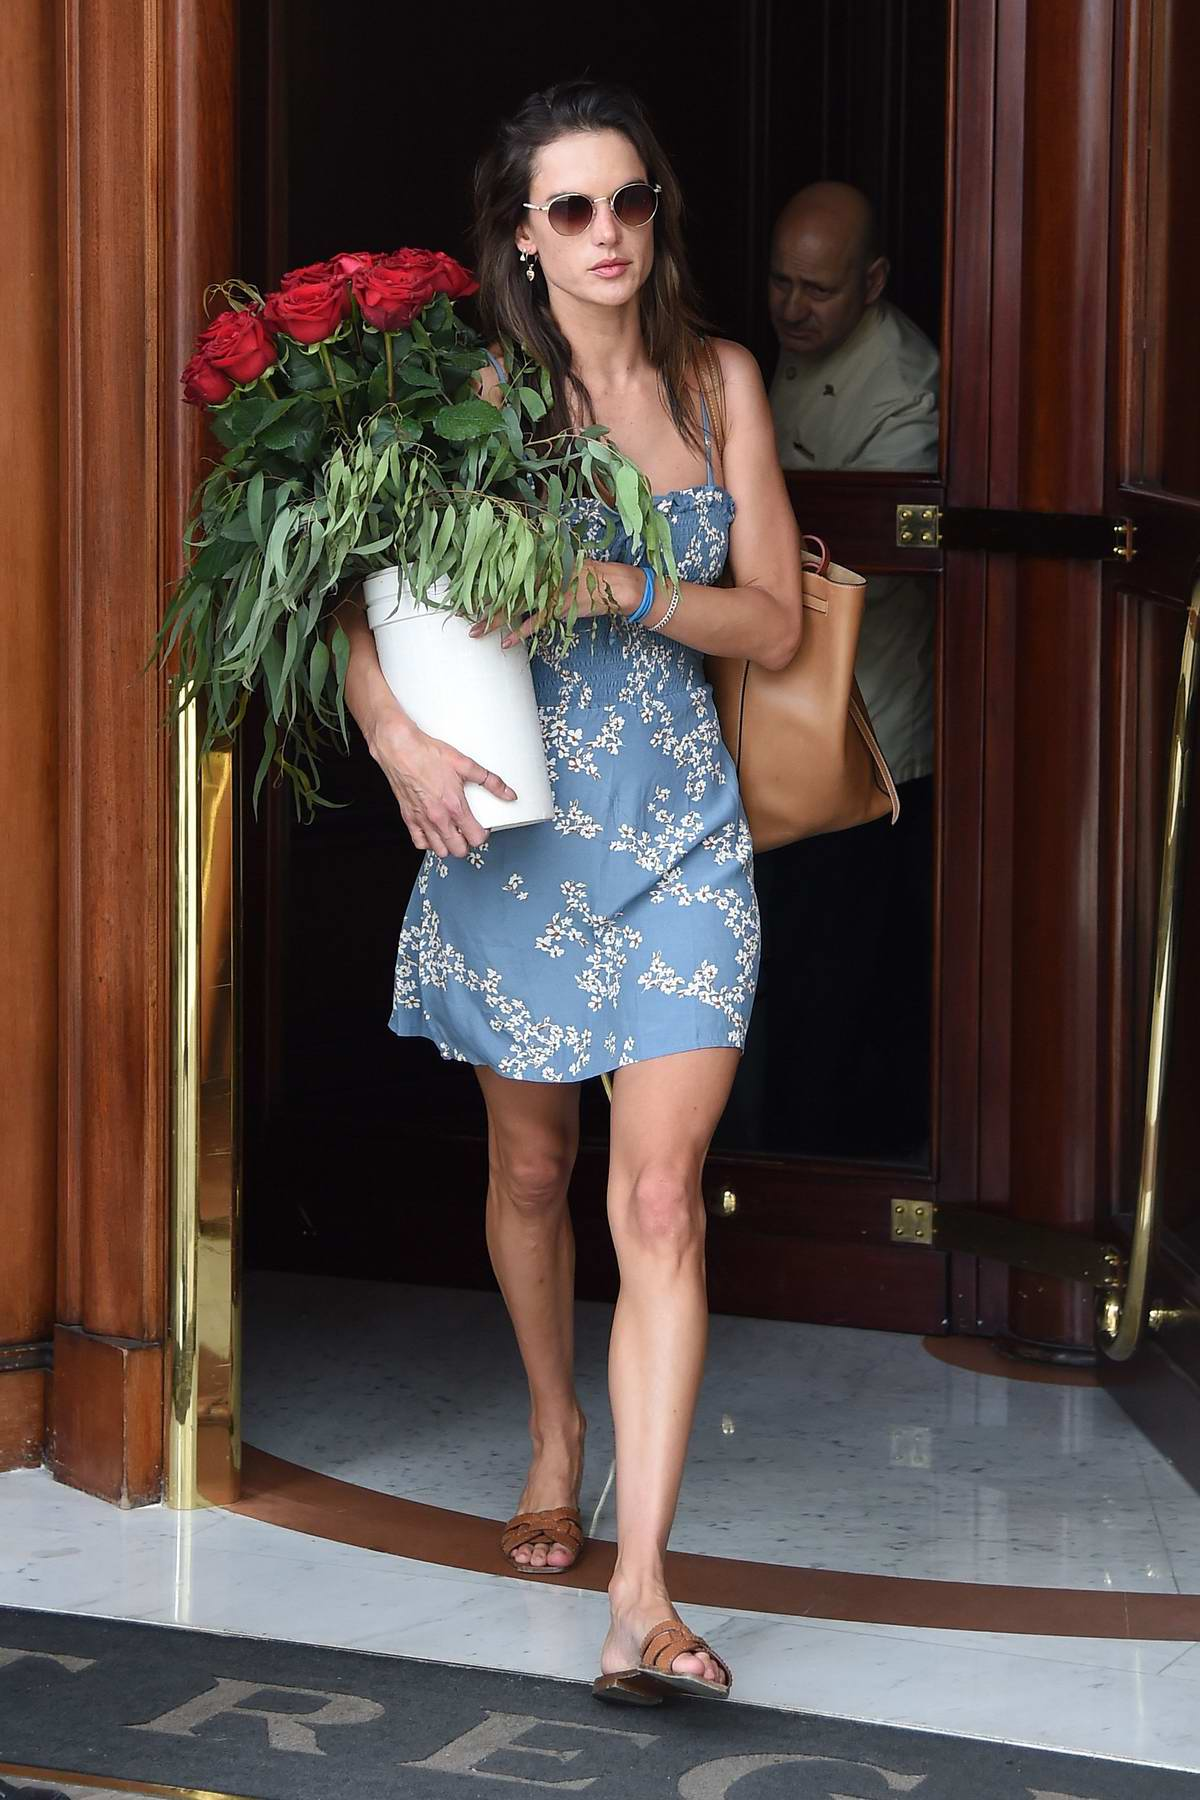 Alessandra Ambrosio wears a floral print blue dress and carries a bouquet of red roses as she leaves her hotel in Florence, Italy